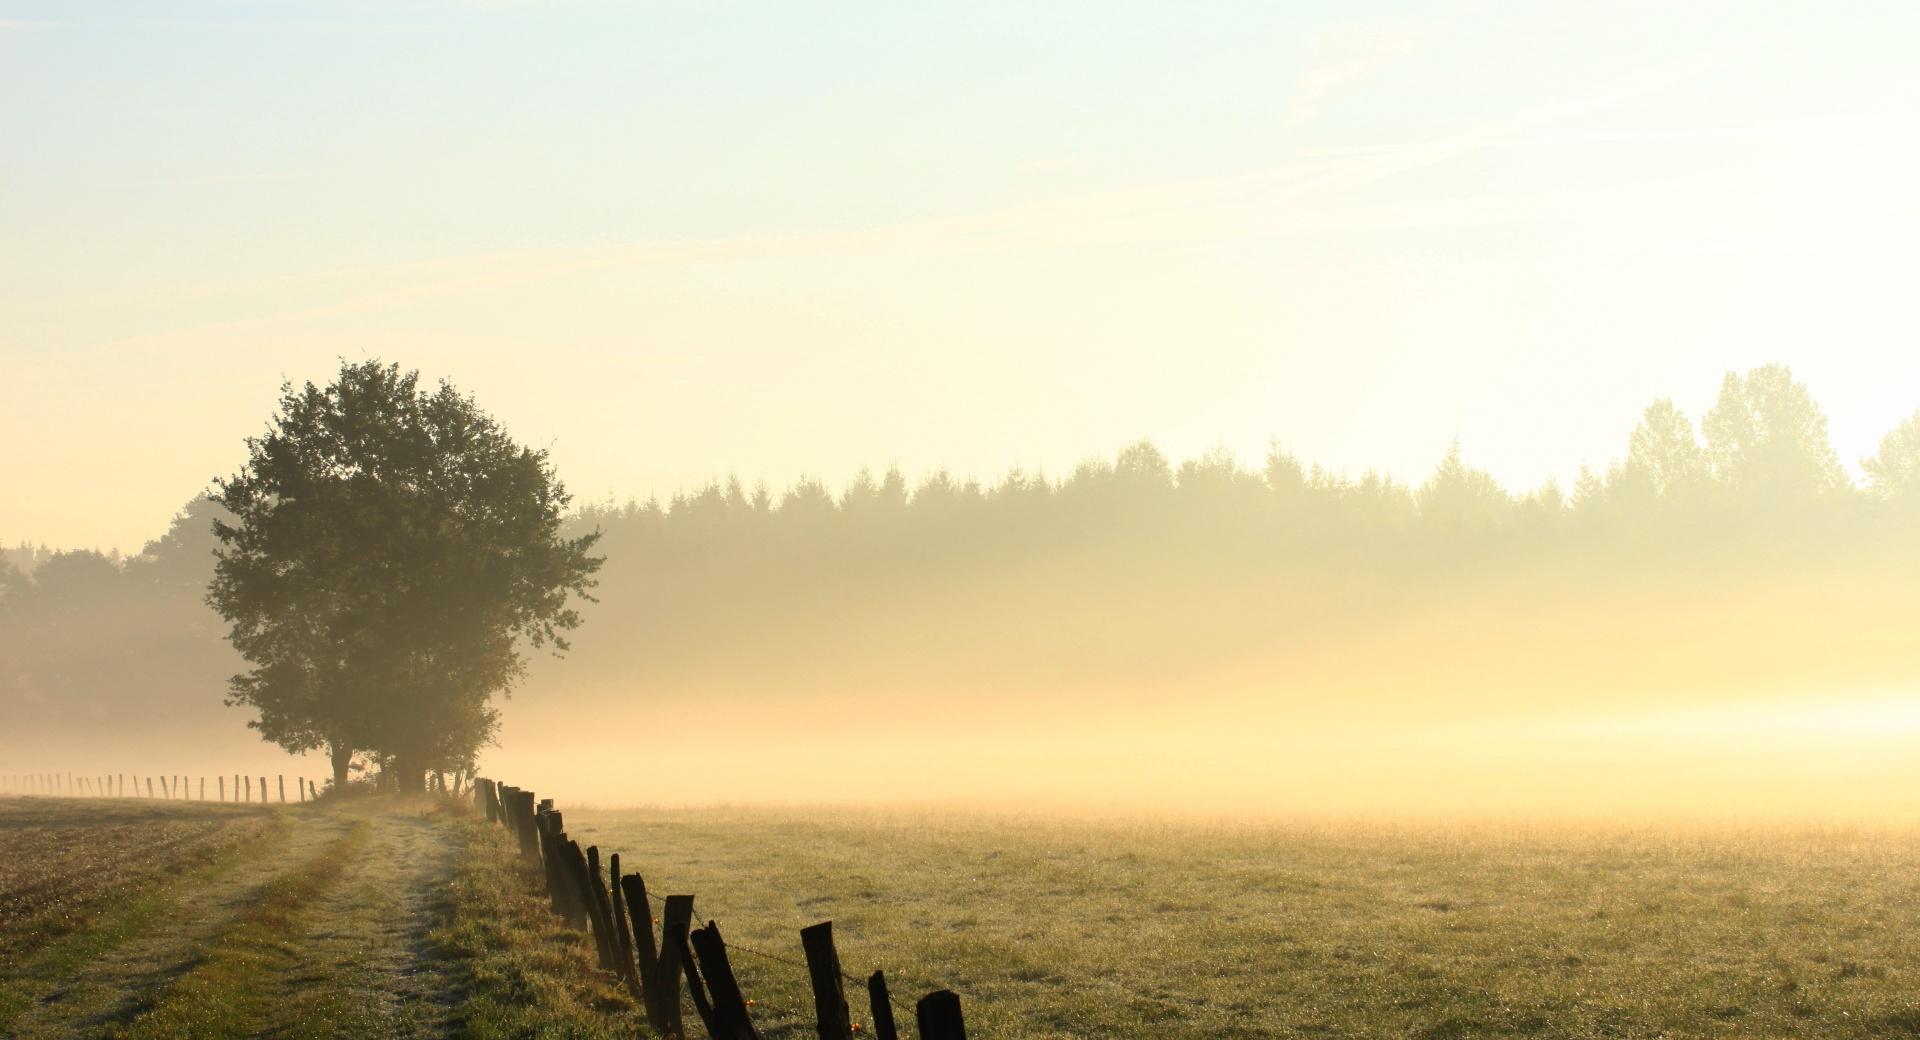 Foggy Field, Morning wallpapers HD quality